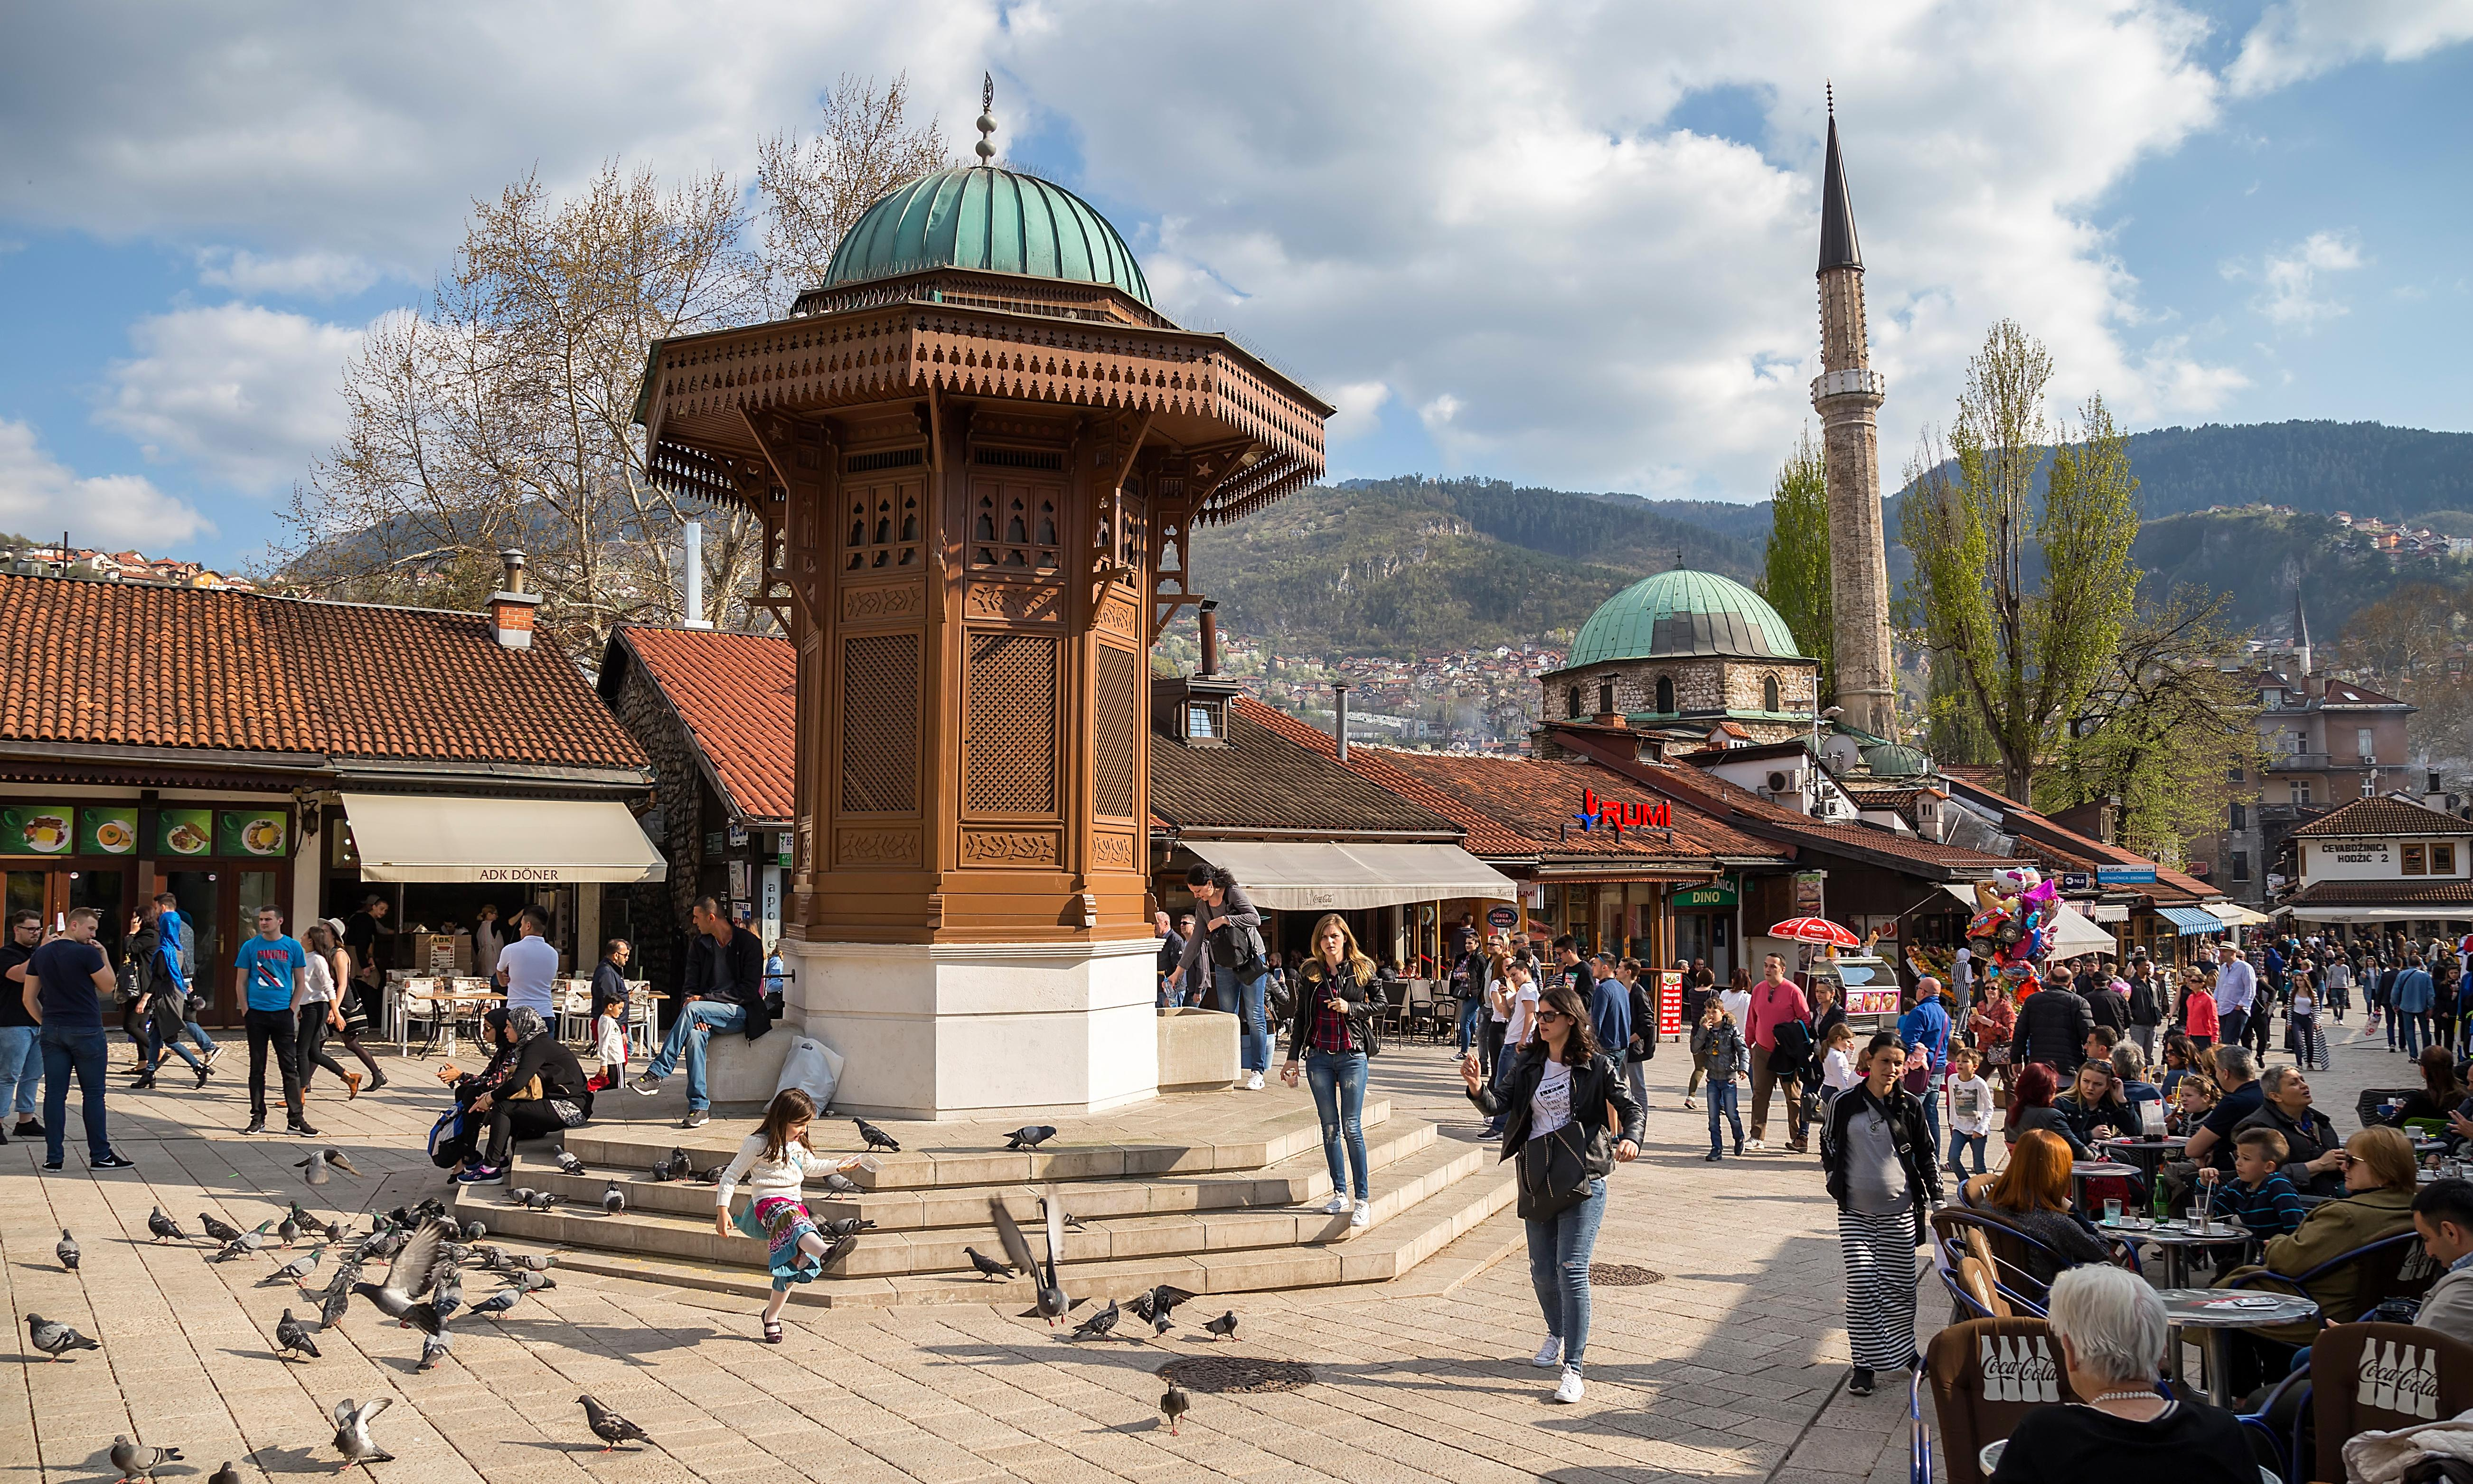 Bosnia is at risk of becoming a failed state. Does the EU want that on its doorstep?